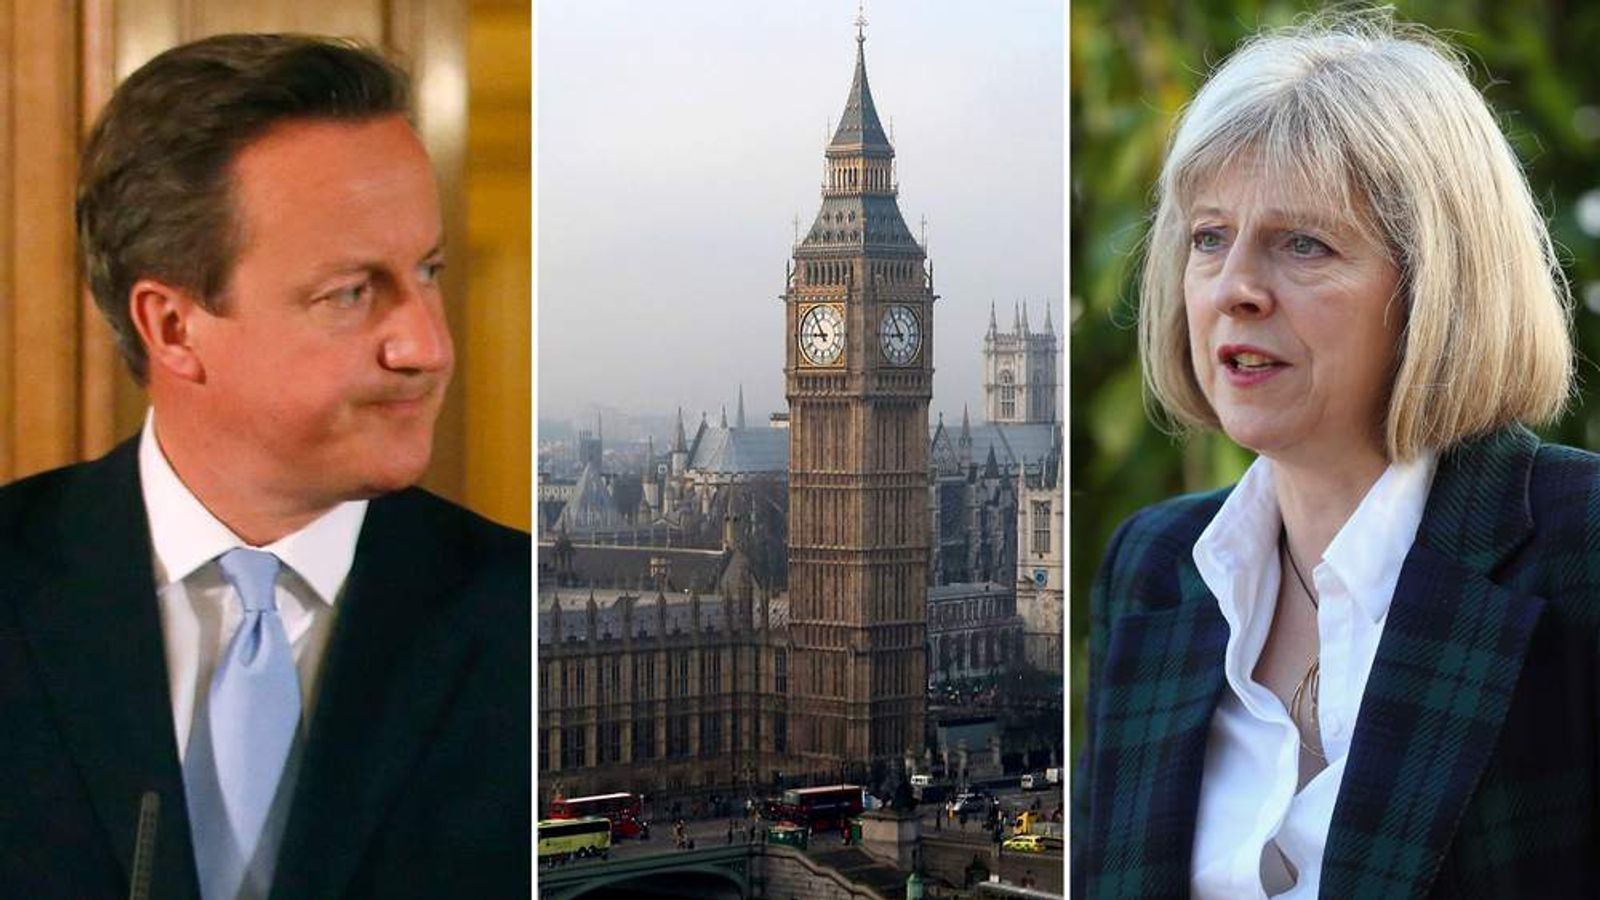 David Cameron says he is determined to establish the truth behind the claims of a 1980s paedophile ring at Westminster.